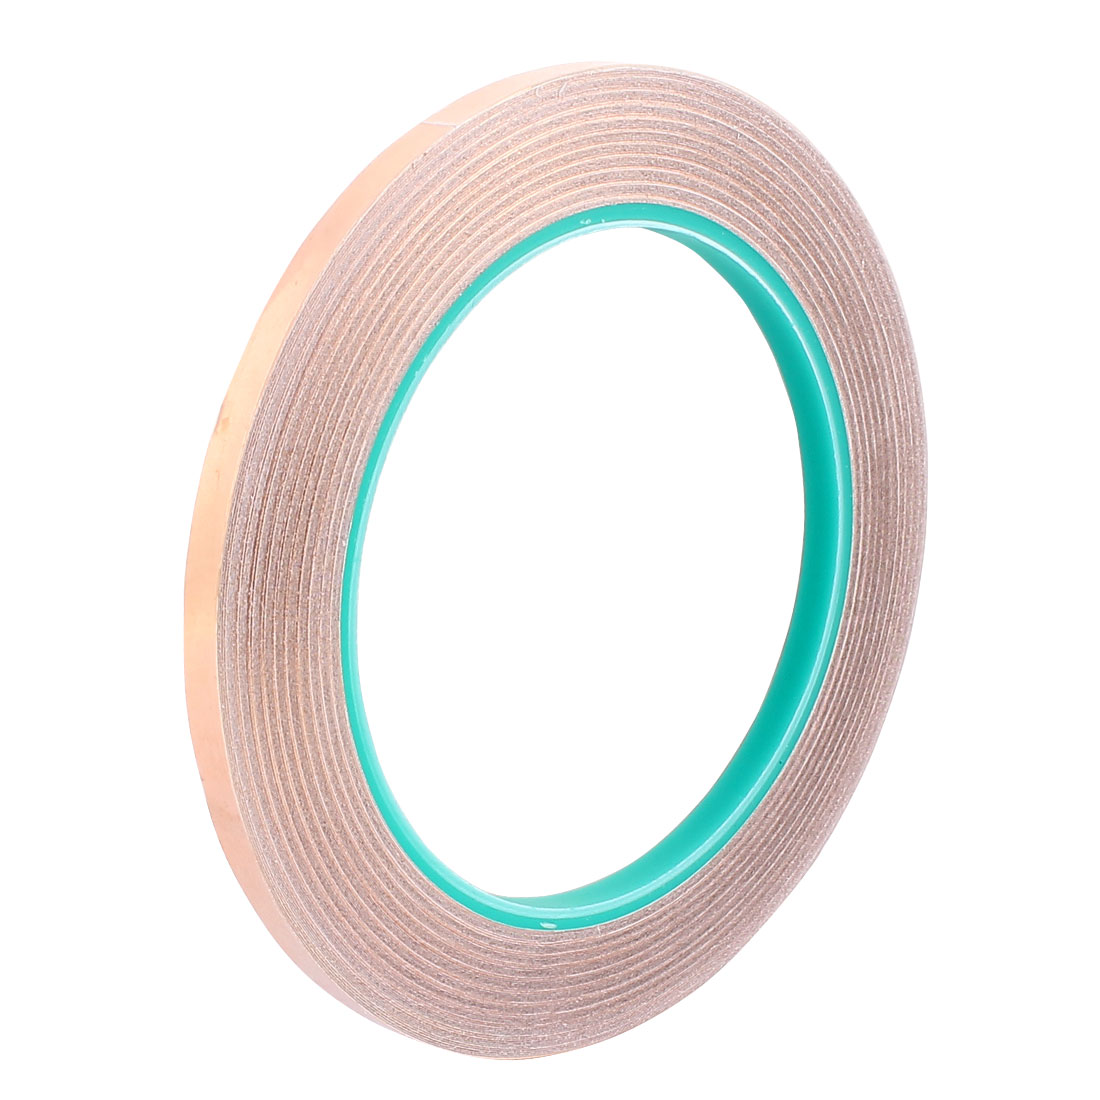 6mm Width 20m Long DIY Adhesive Double Sided Conductive Copper Foil Tape